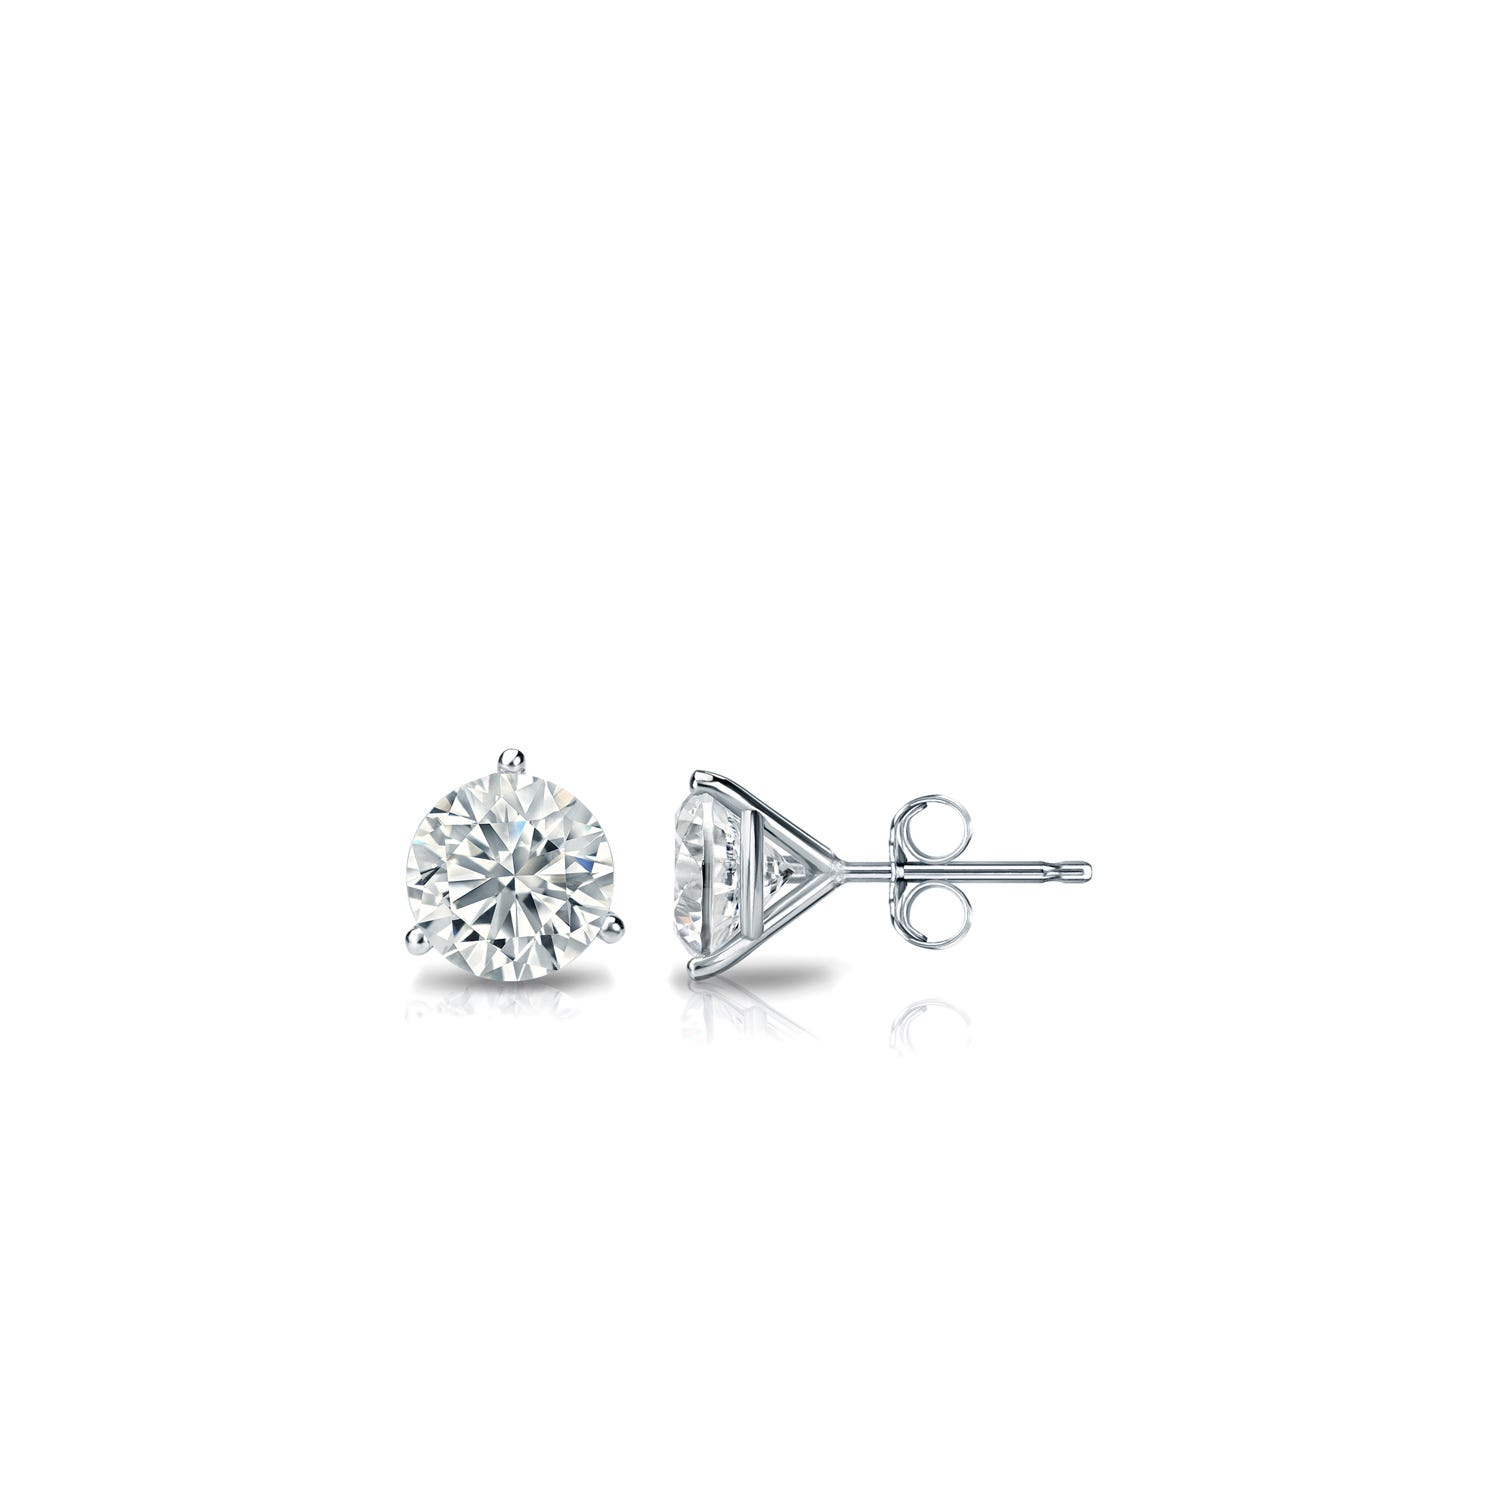 1/6 CTTW Round Diamond Solitaire Stud Earrings IJ I2 in 10K White Gold 3-Prong Setting